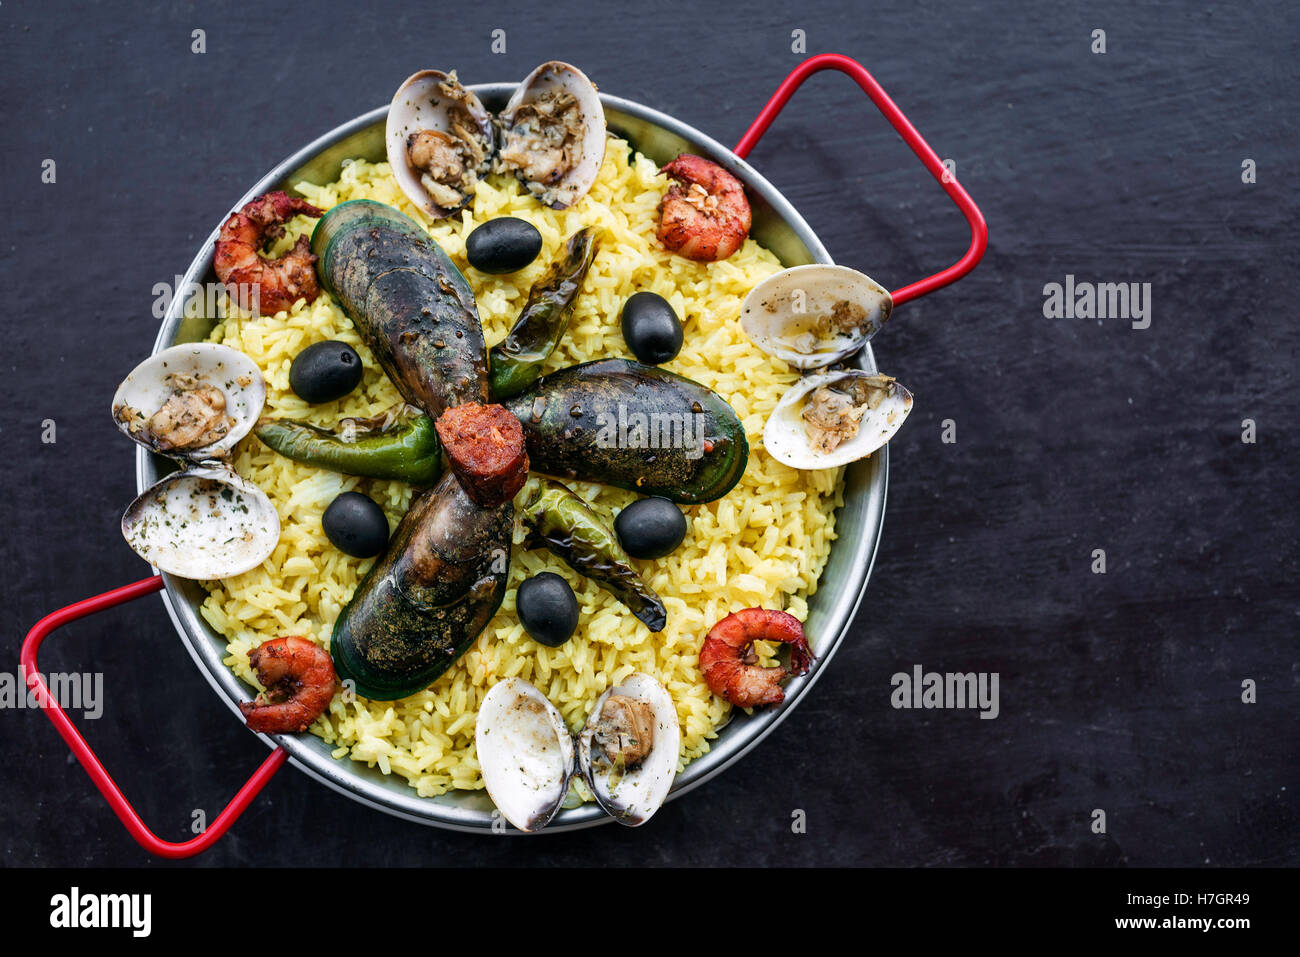 mixed fresh steamed seafood and rice paella famous traditional portuguese spanish meal - Stock Image